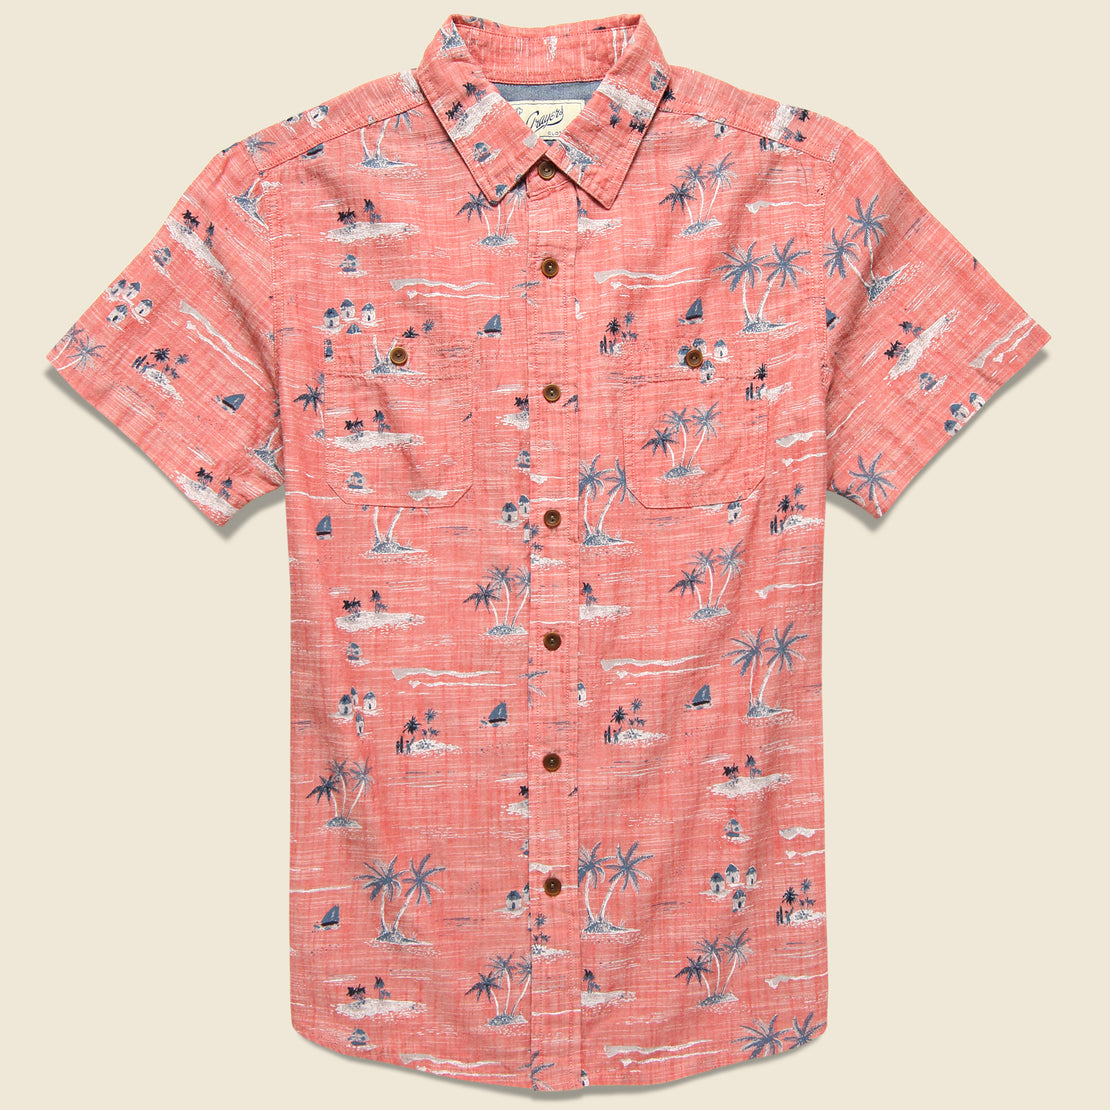 Grayers Giligans Printed Chambray Shirt - Dusty Cedar